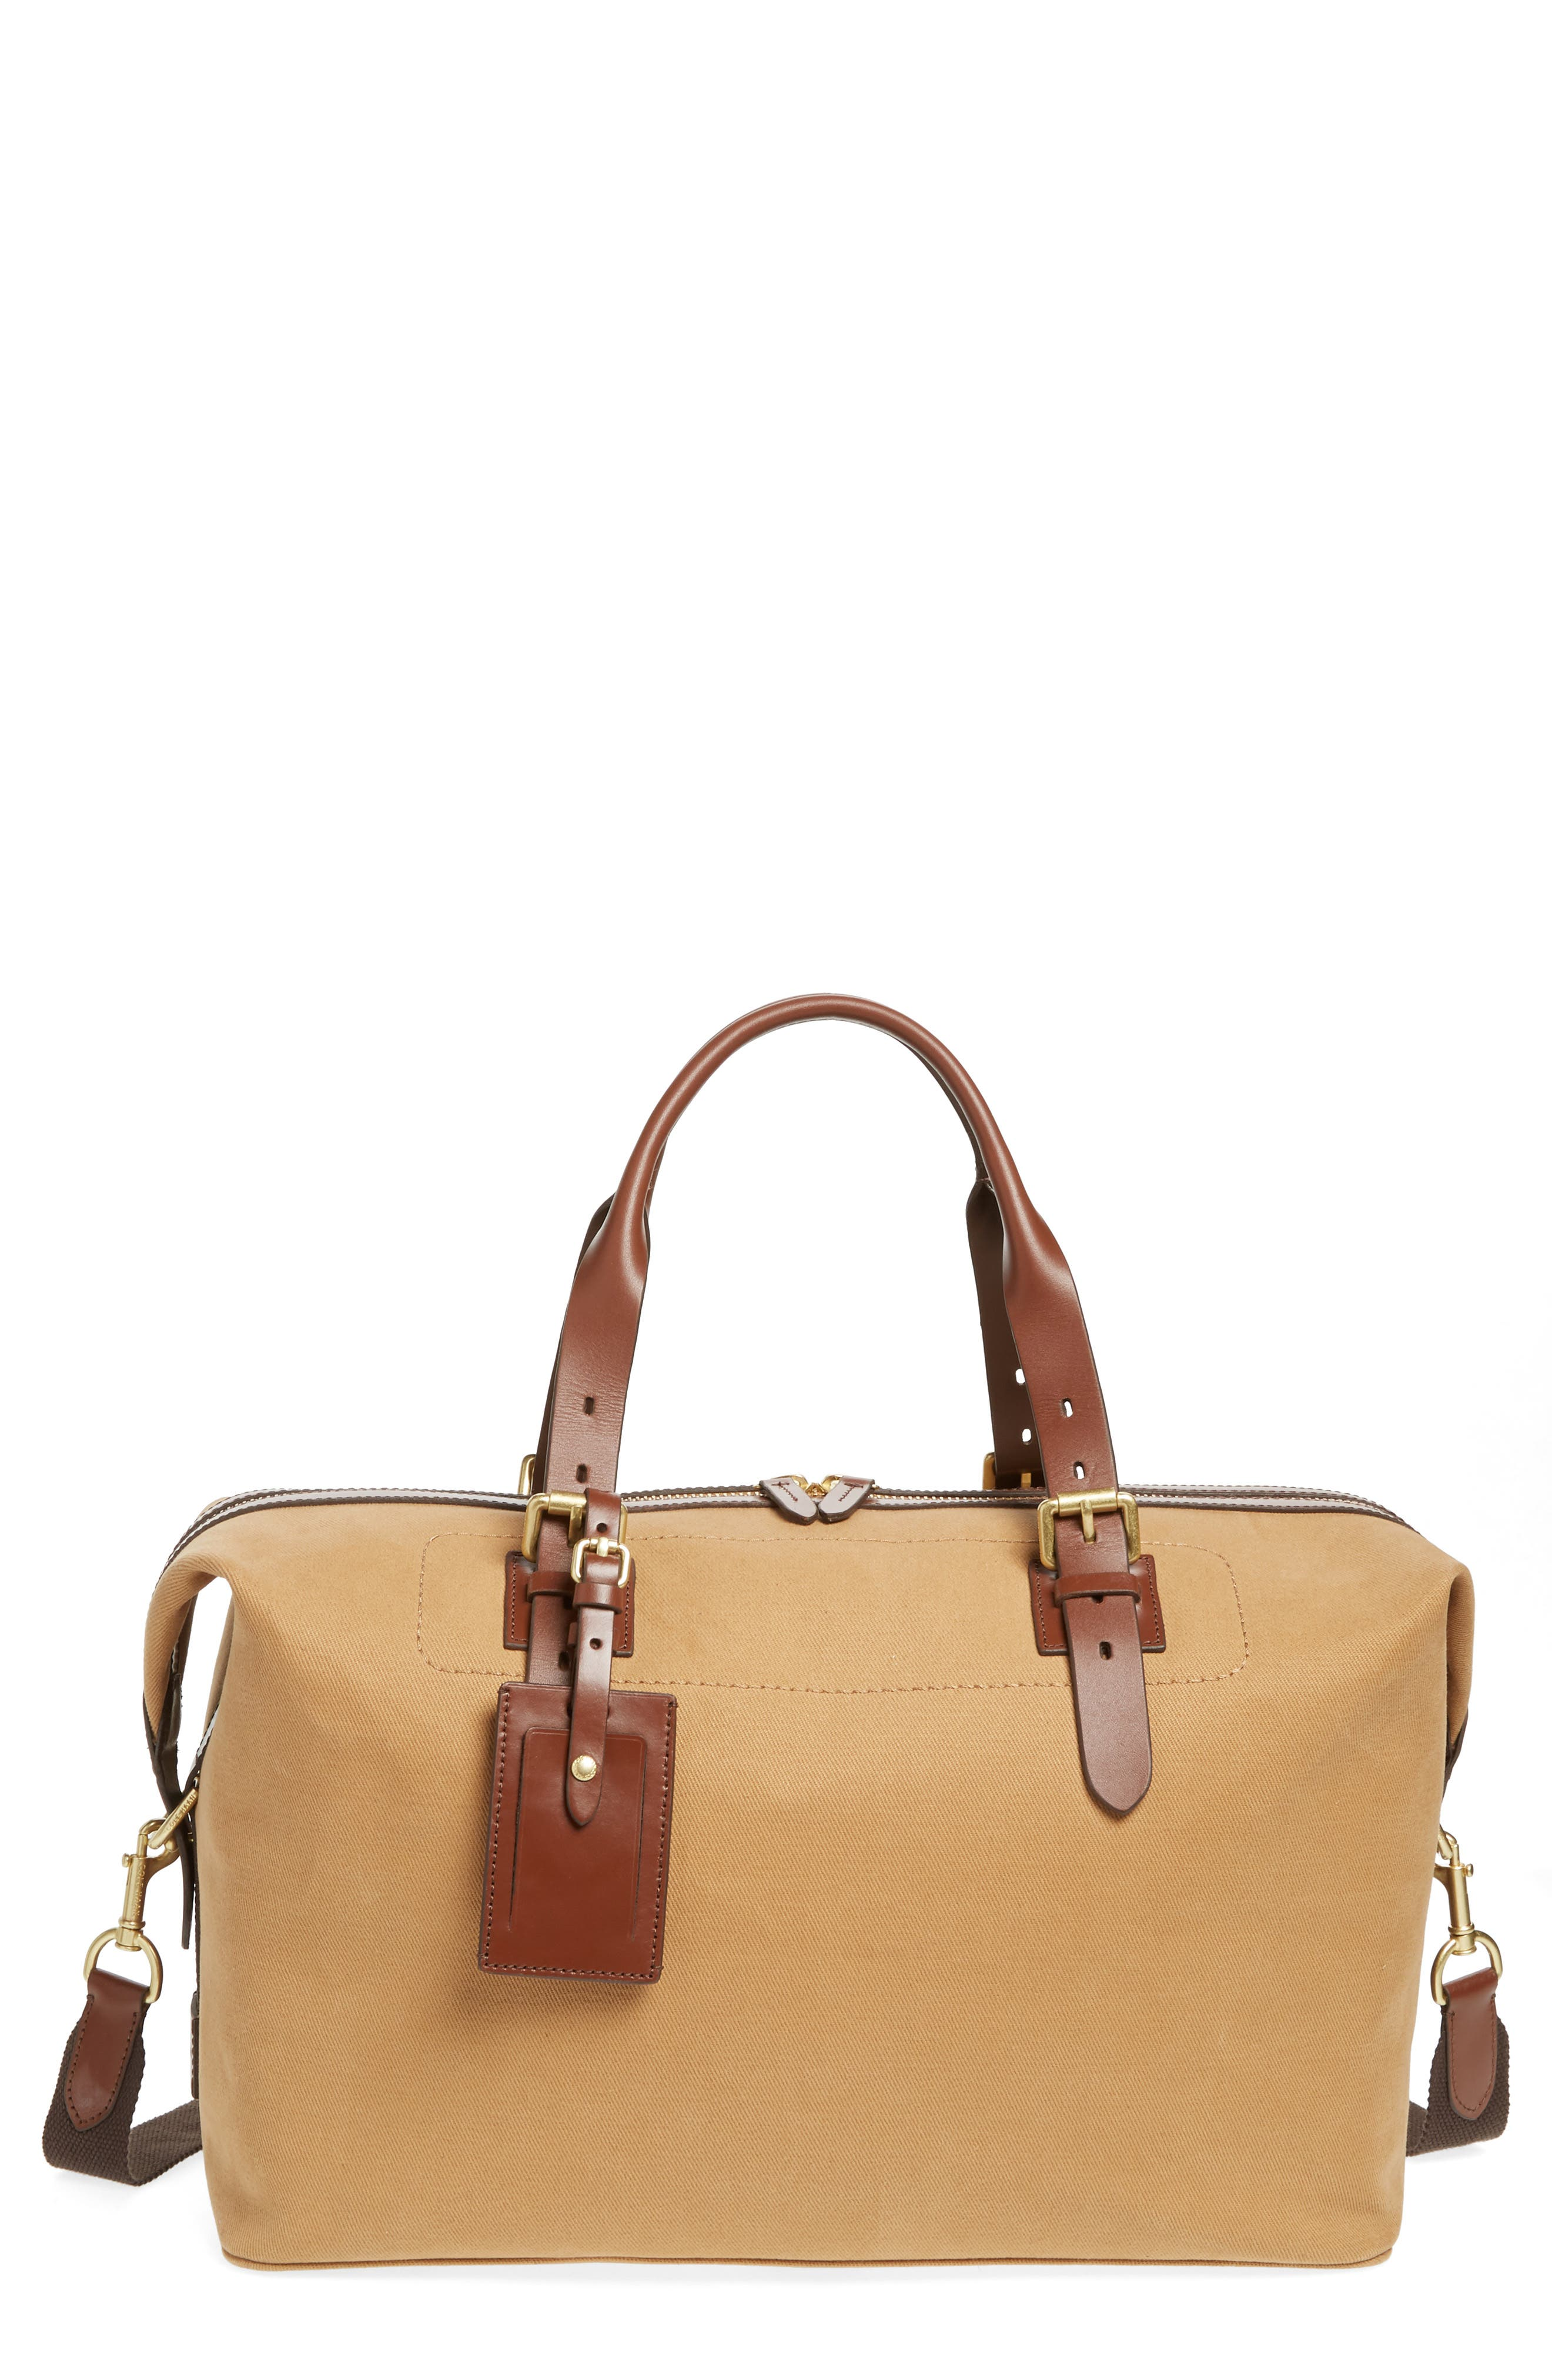 Canvas Duffel Bag,                             Main thumbnail 1, color,                             ICED COFFEE